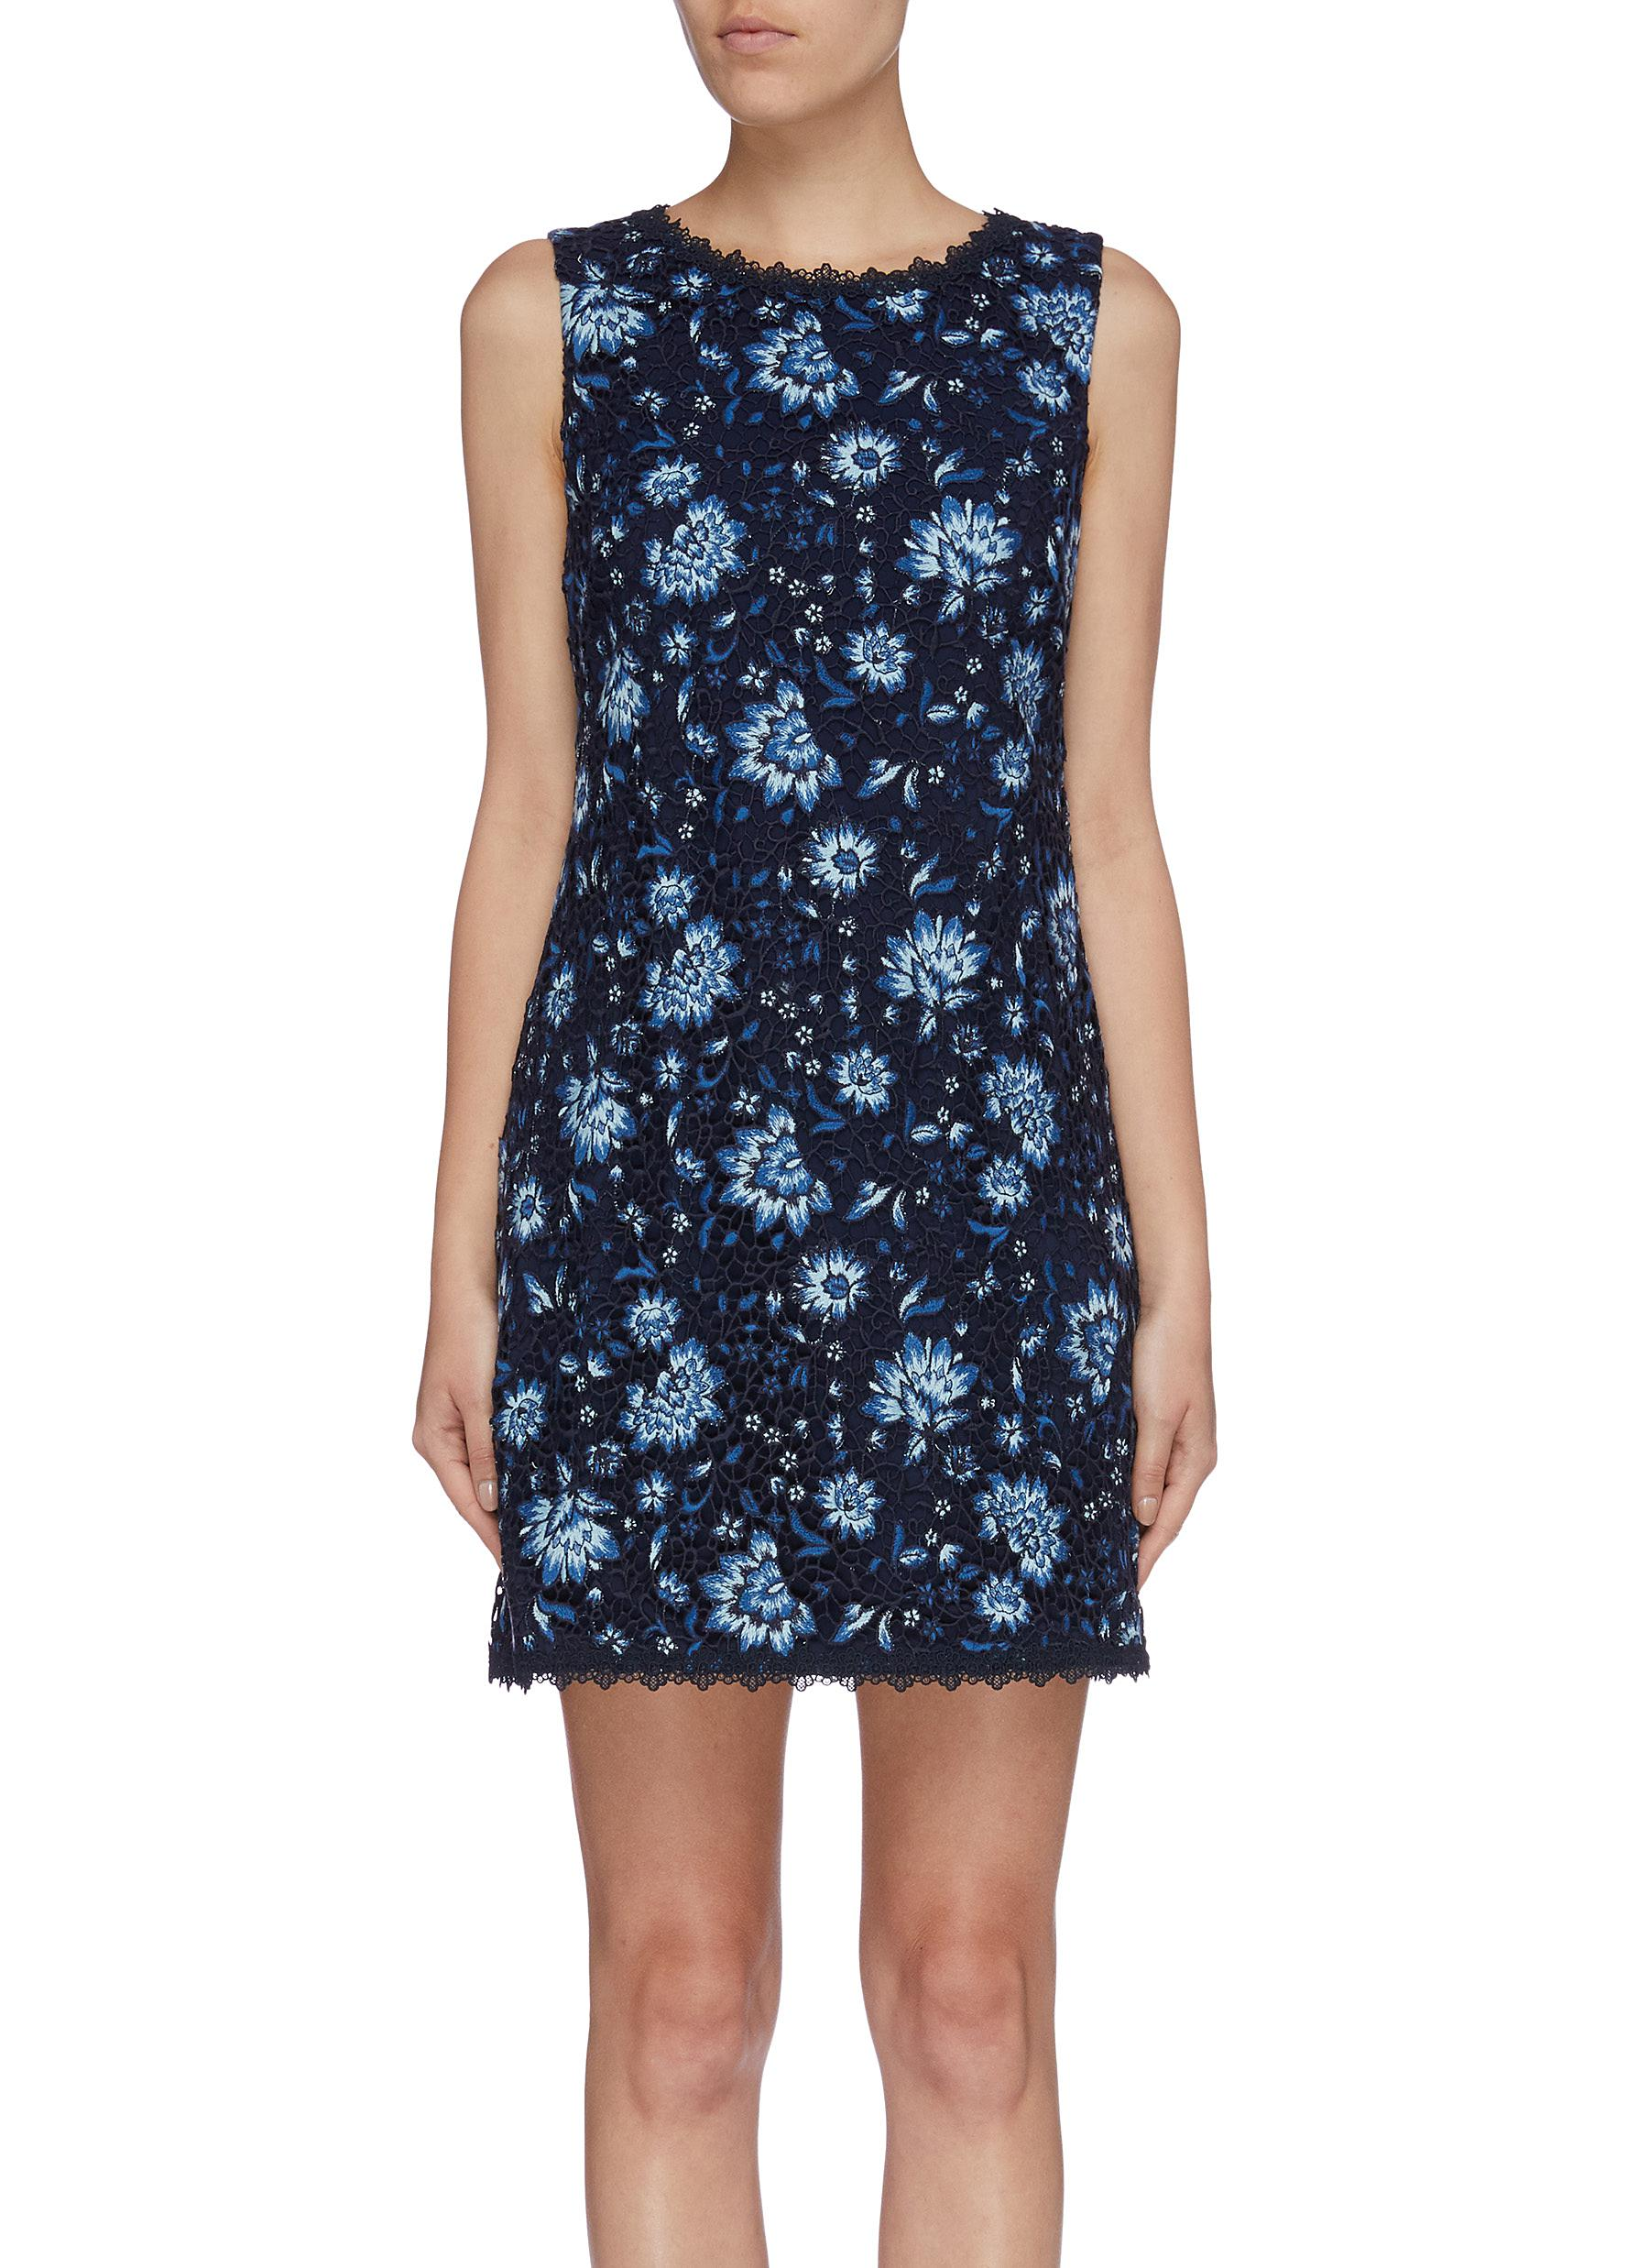 Clyde lace trim floral embroidered shift dress by Alice + Olivia